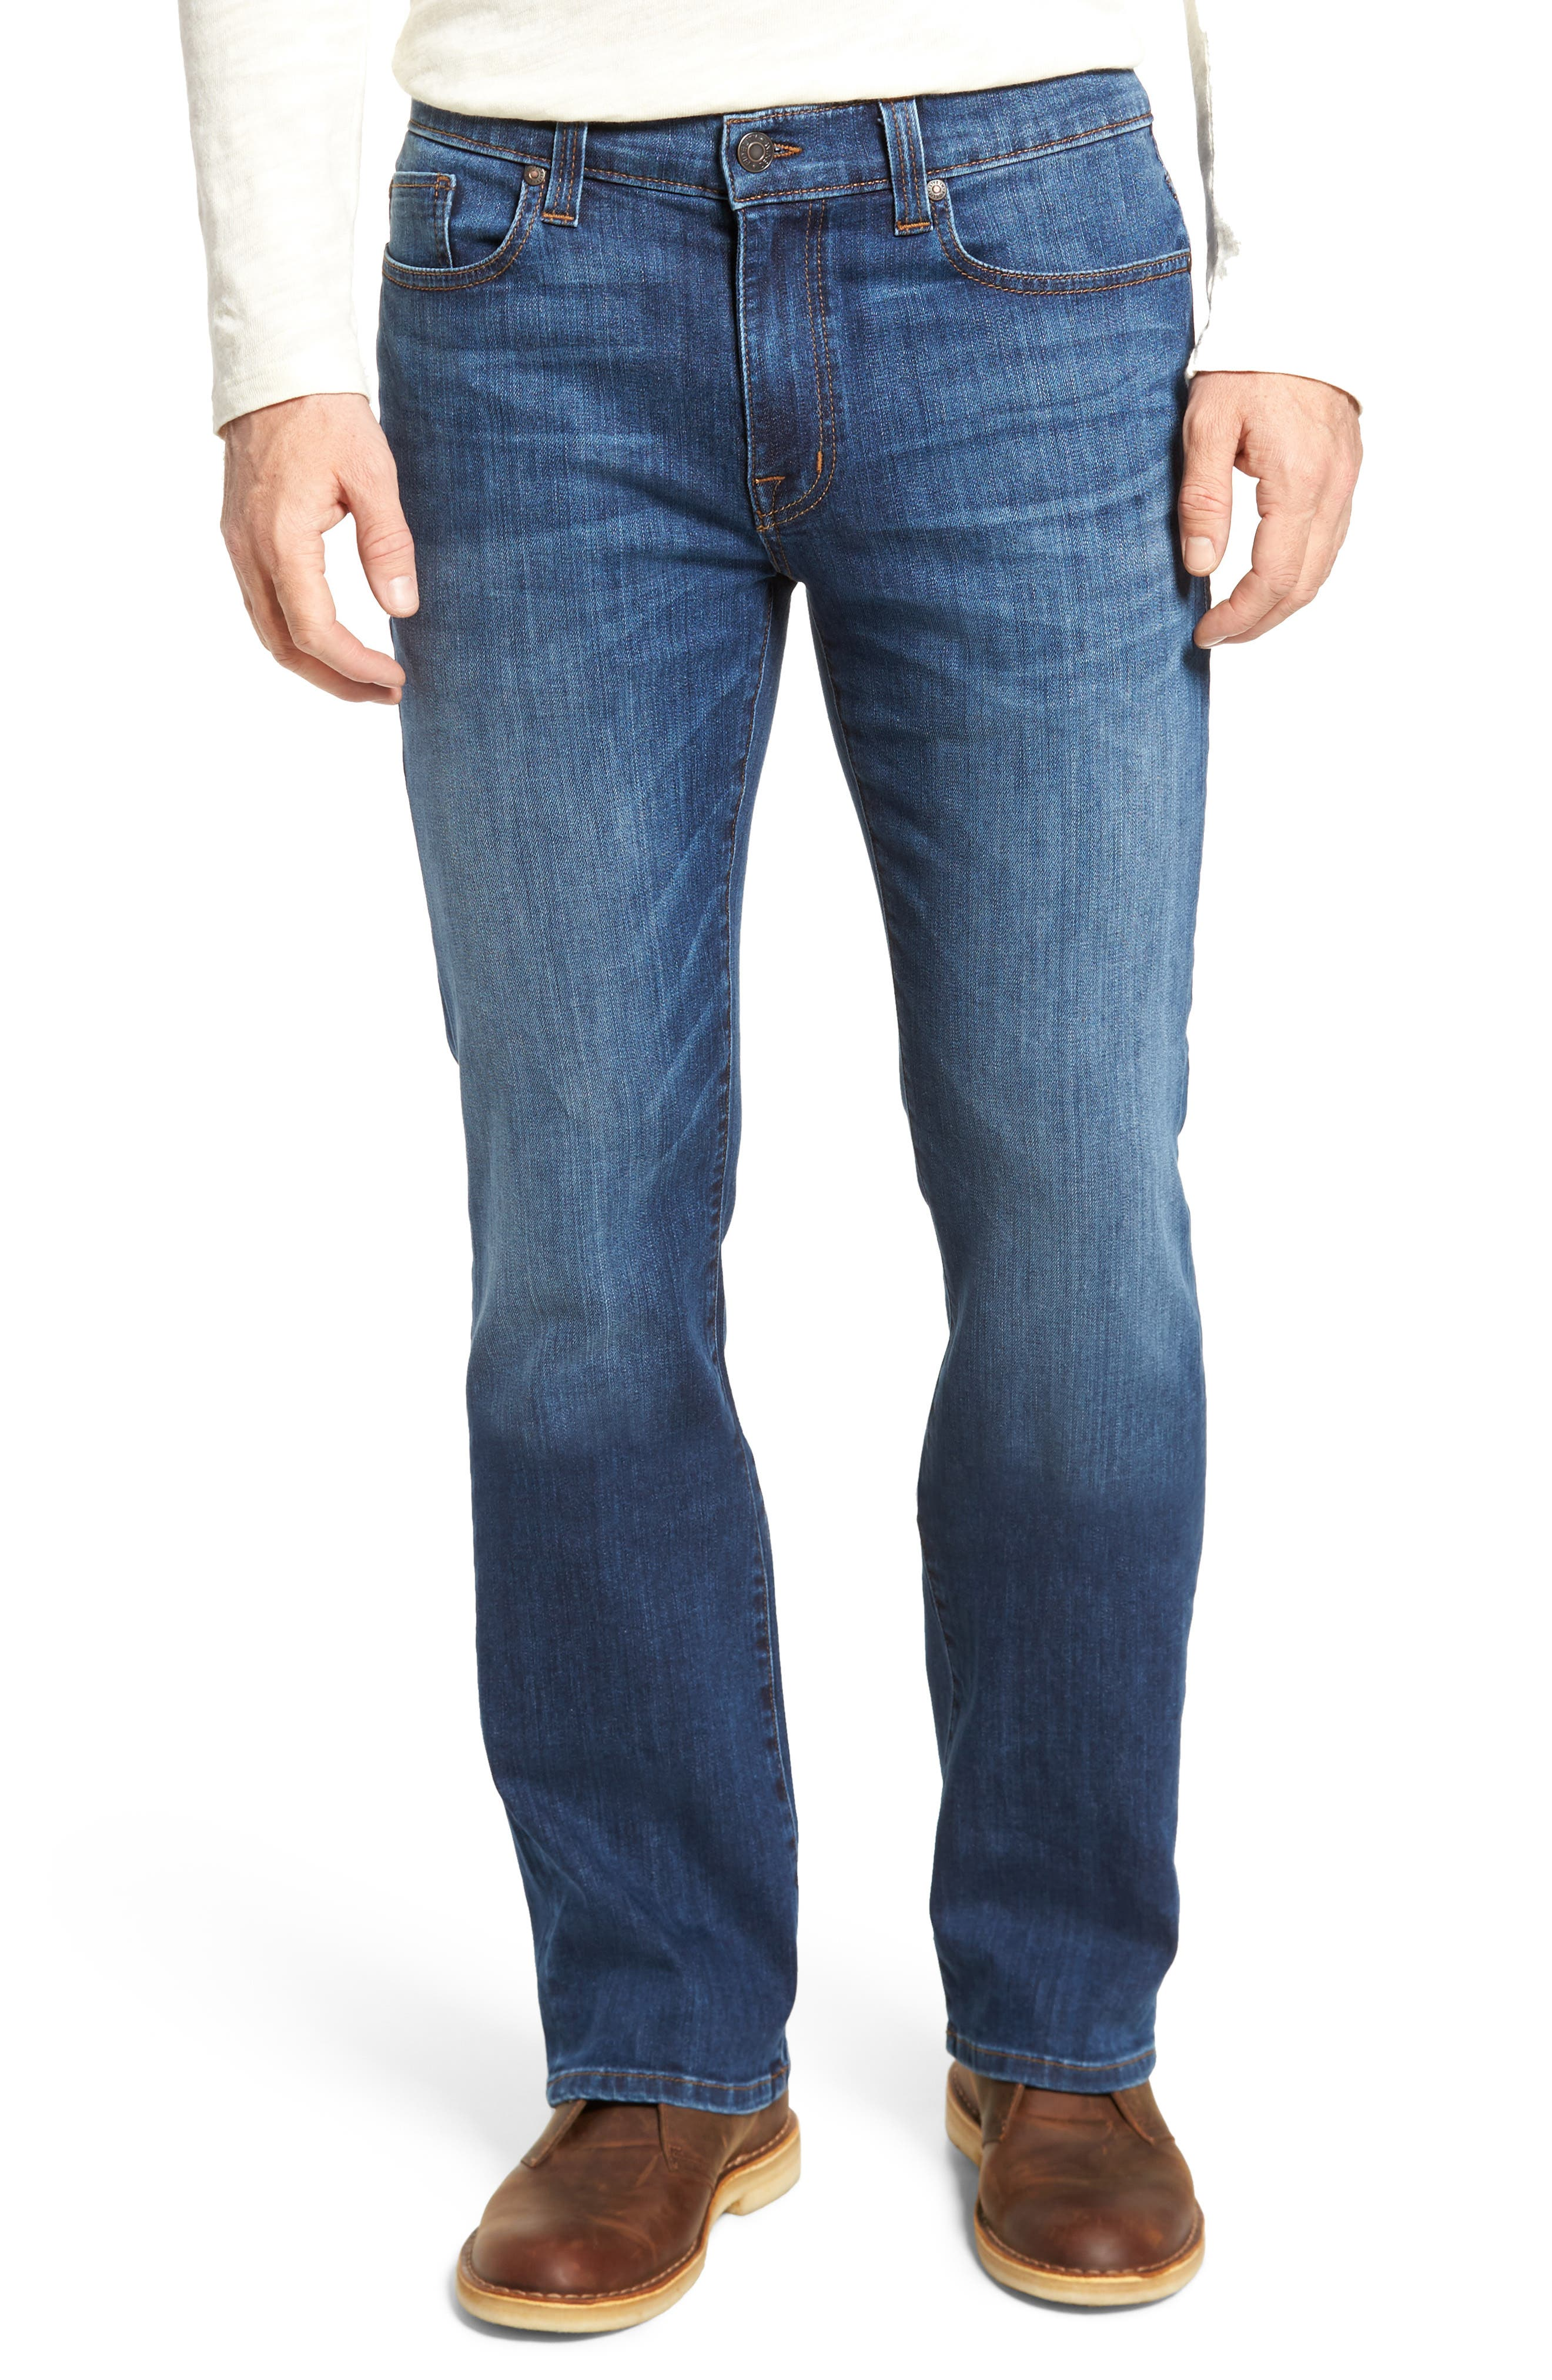 5011 Relaxed Fit Jeans,                             Main thumbnail 1, color,                             LIVERPOOL